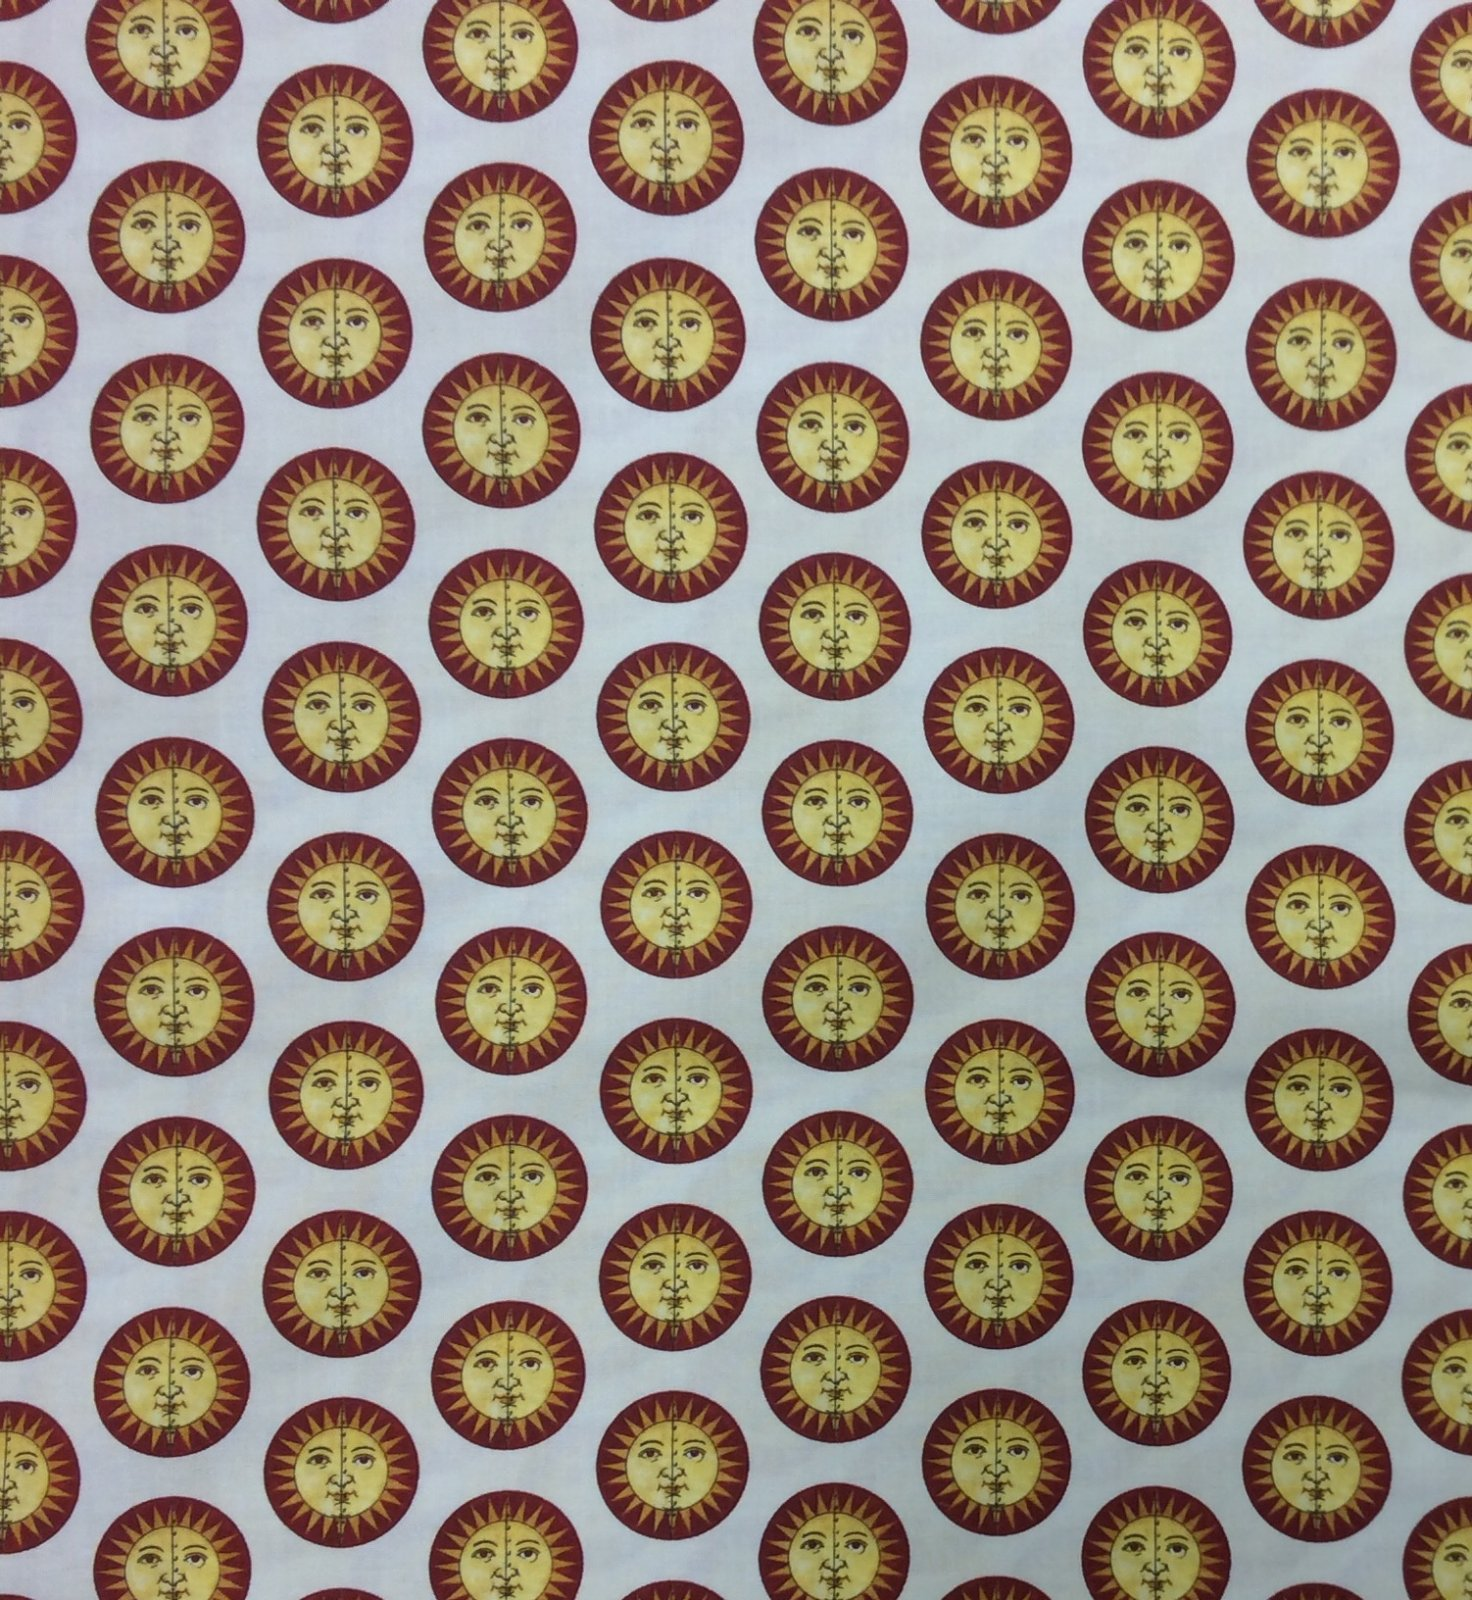 Sunshine Zodiac Galaxy Space Tan Sun Faces Quilting Cotton Fabric FT158